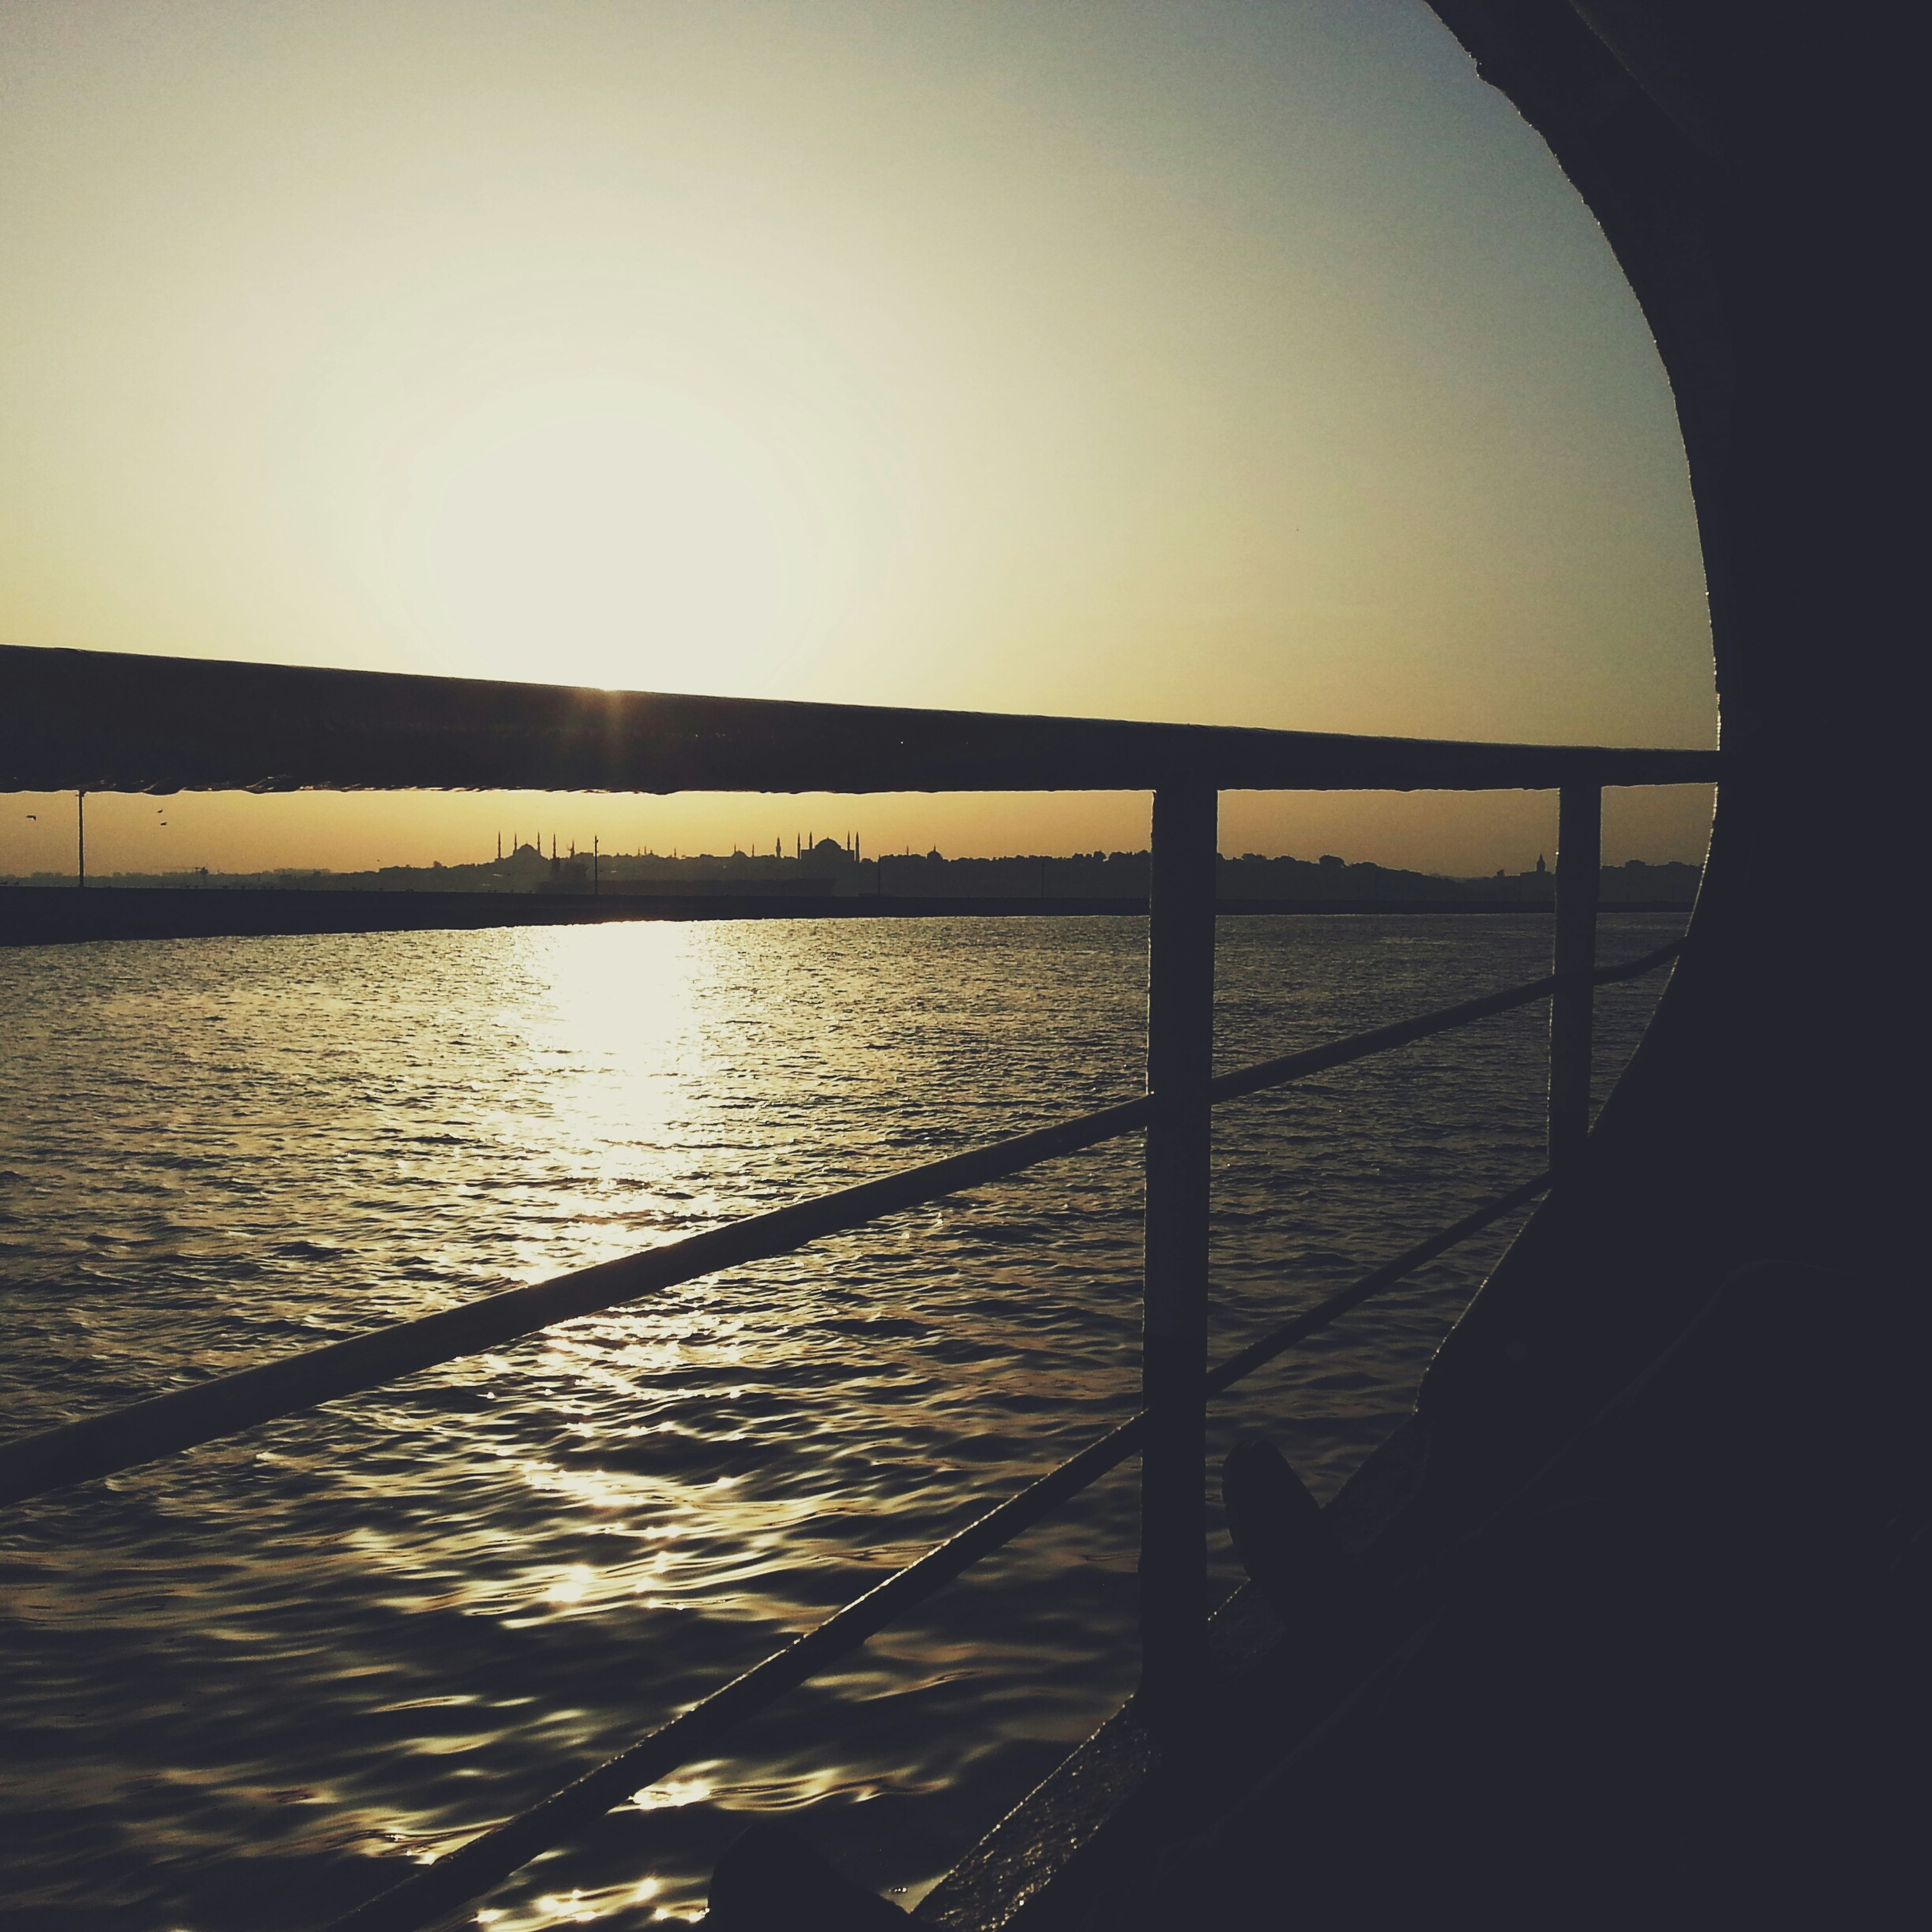 water, sunset, clear sky, sea, sun, transportation, silhouette, tranquil scene, tranquility, scenics, reflection, copy space, beauty in nature, river, sunlight, nature, nautical vessel, railing, sky, boat